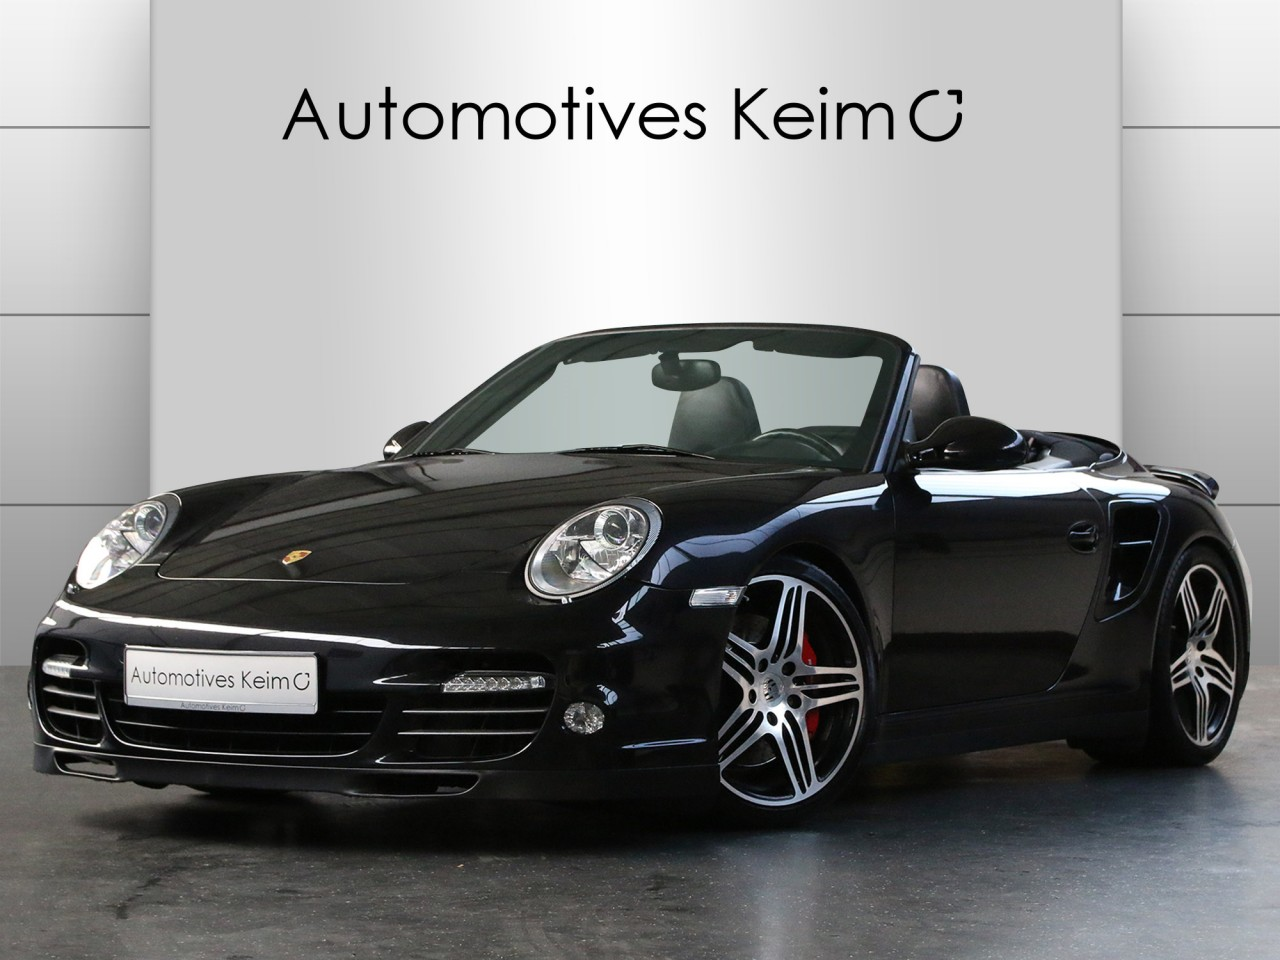 PORSCHE_911_997_CABRIOLET_Automotives_Keim_GmbH_63500_Seligenstadt_www.automotives-keim.de_oliver_keim_002346